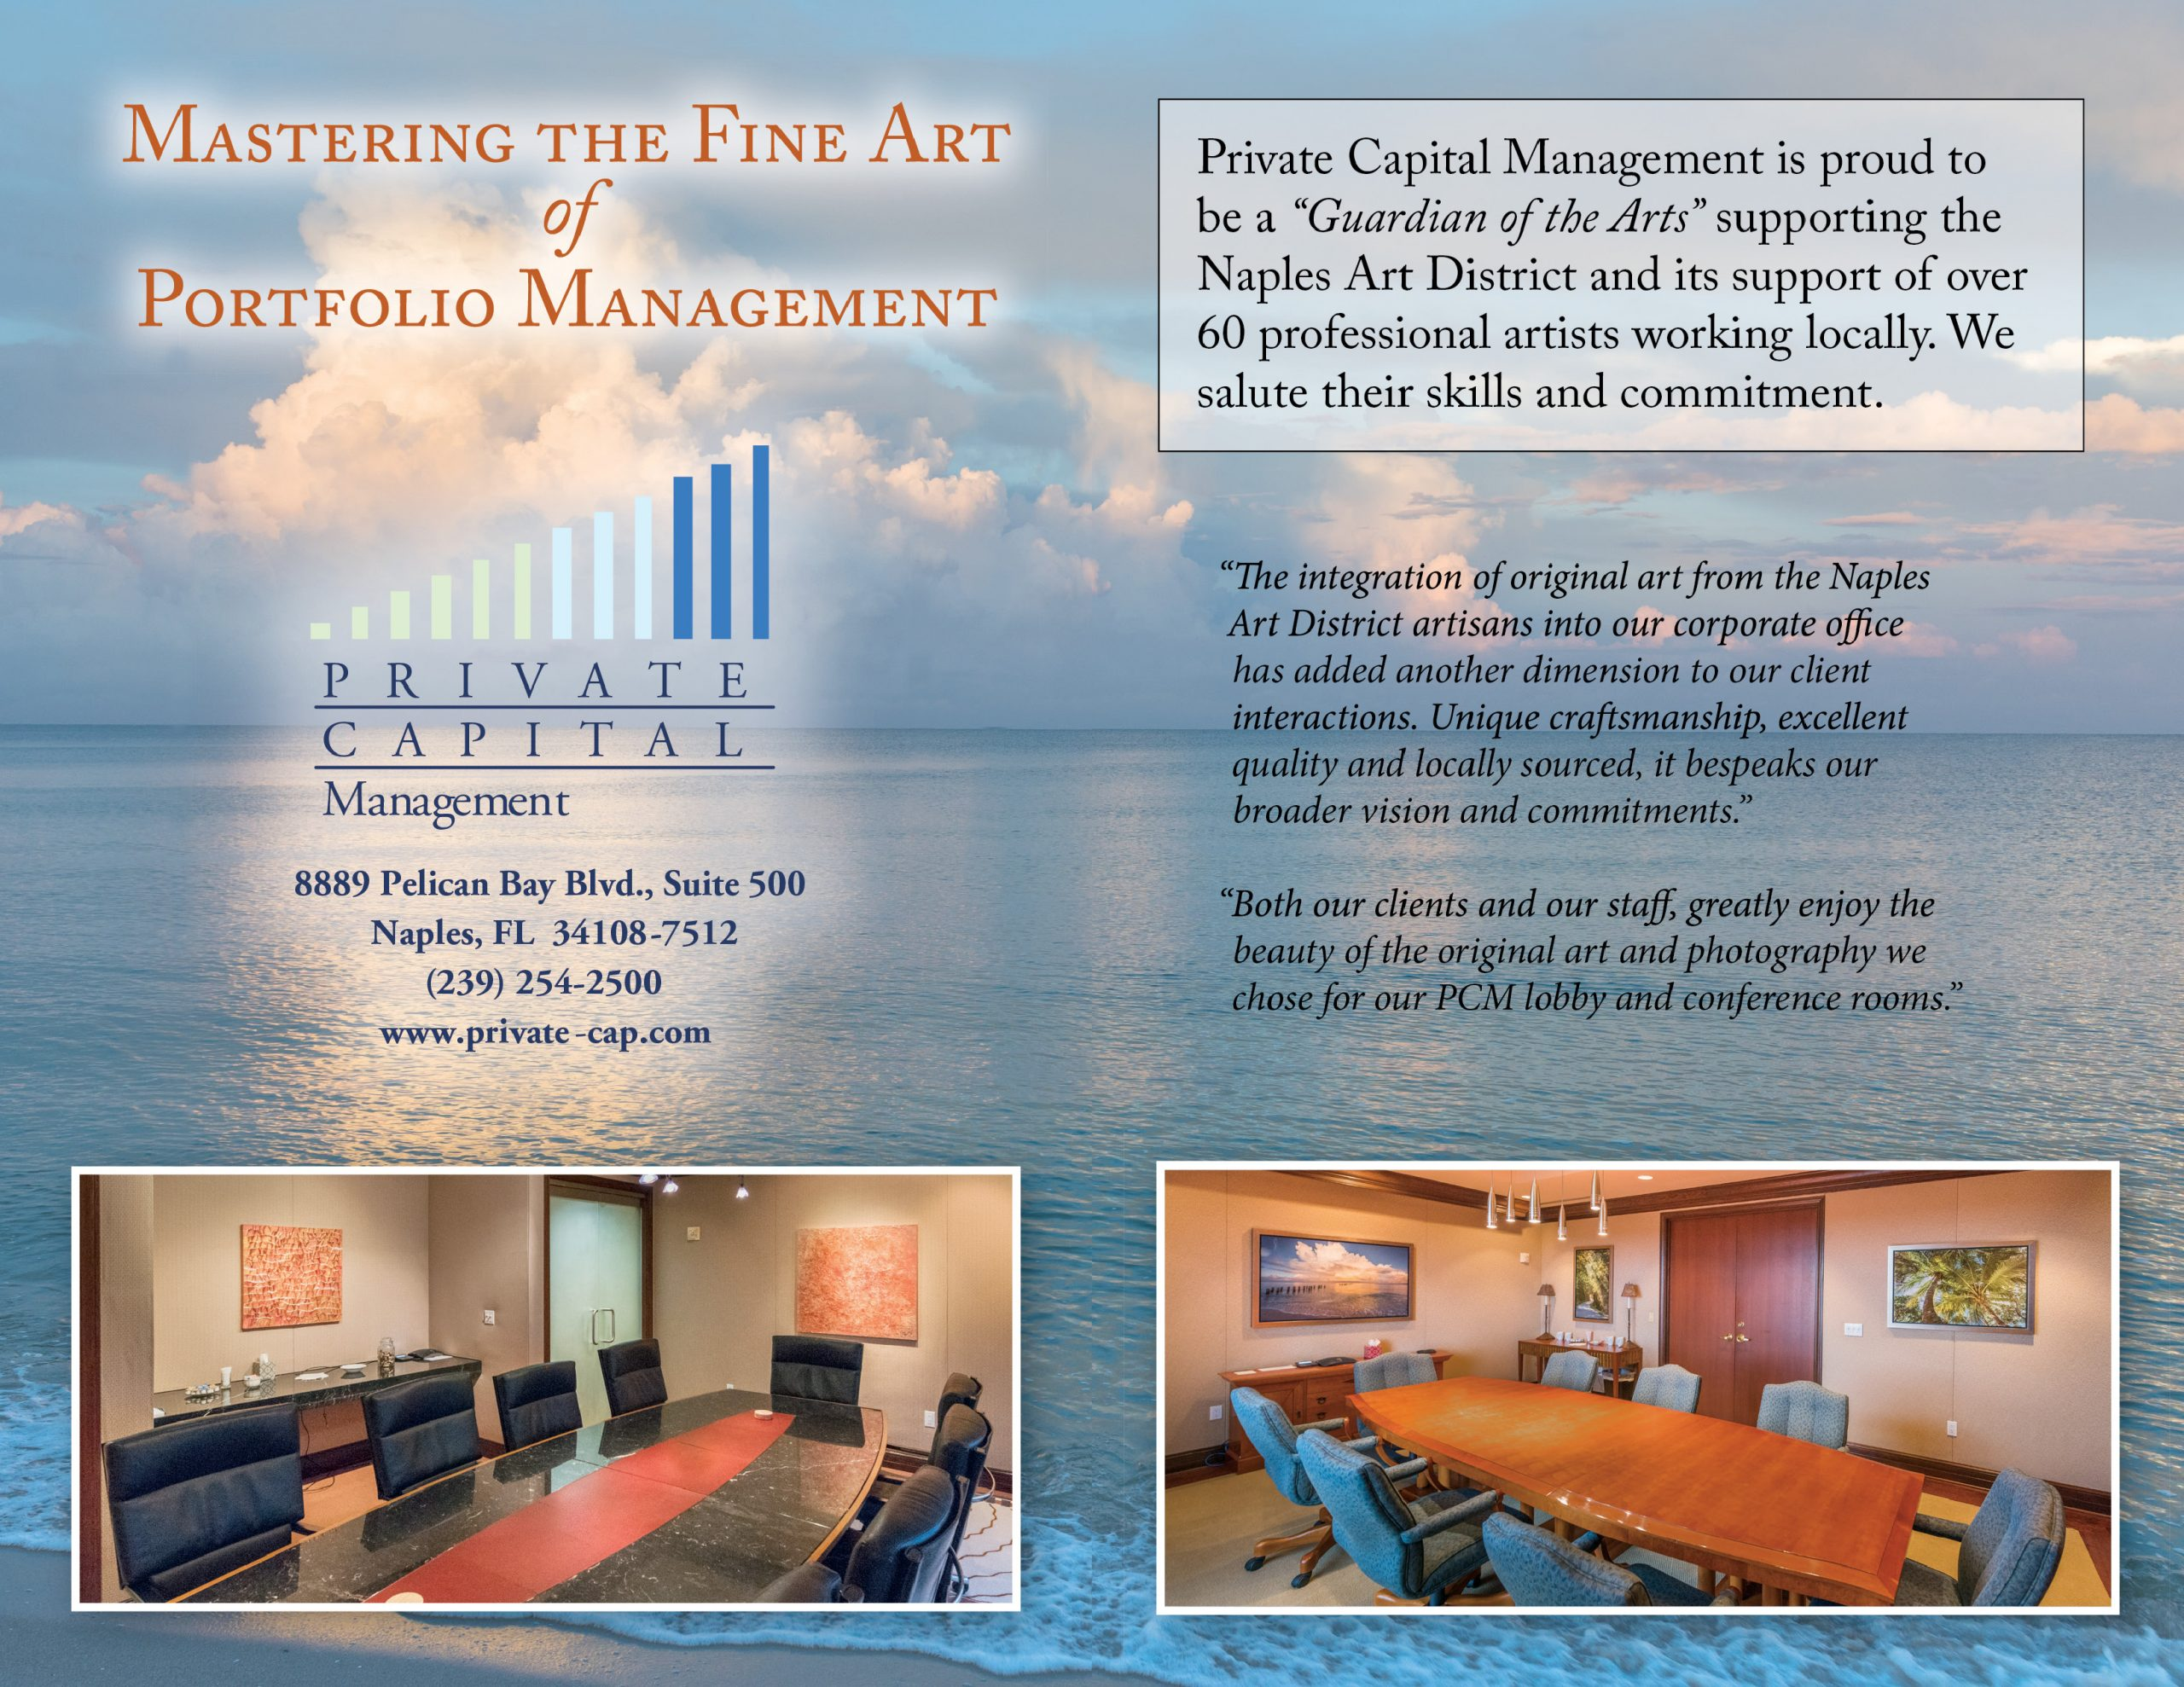 Private Capital Management